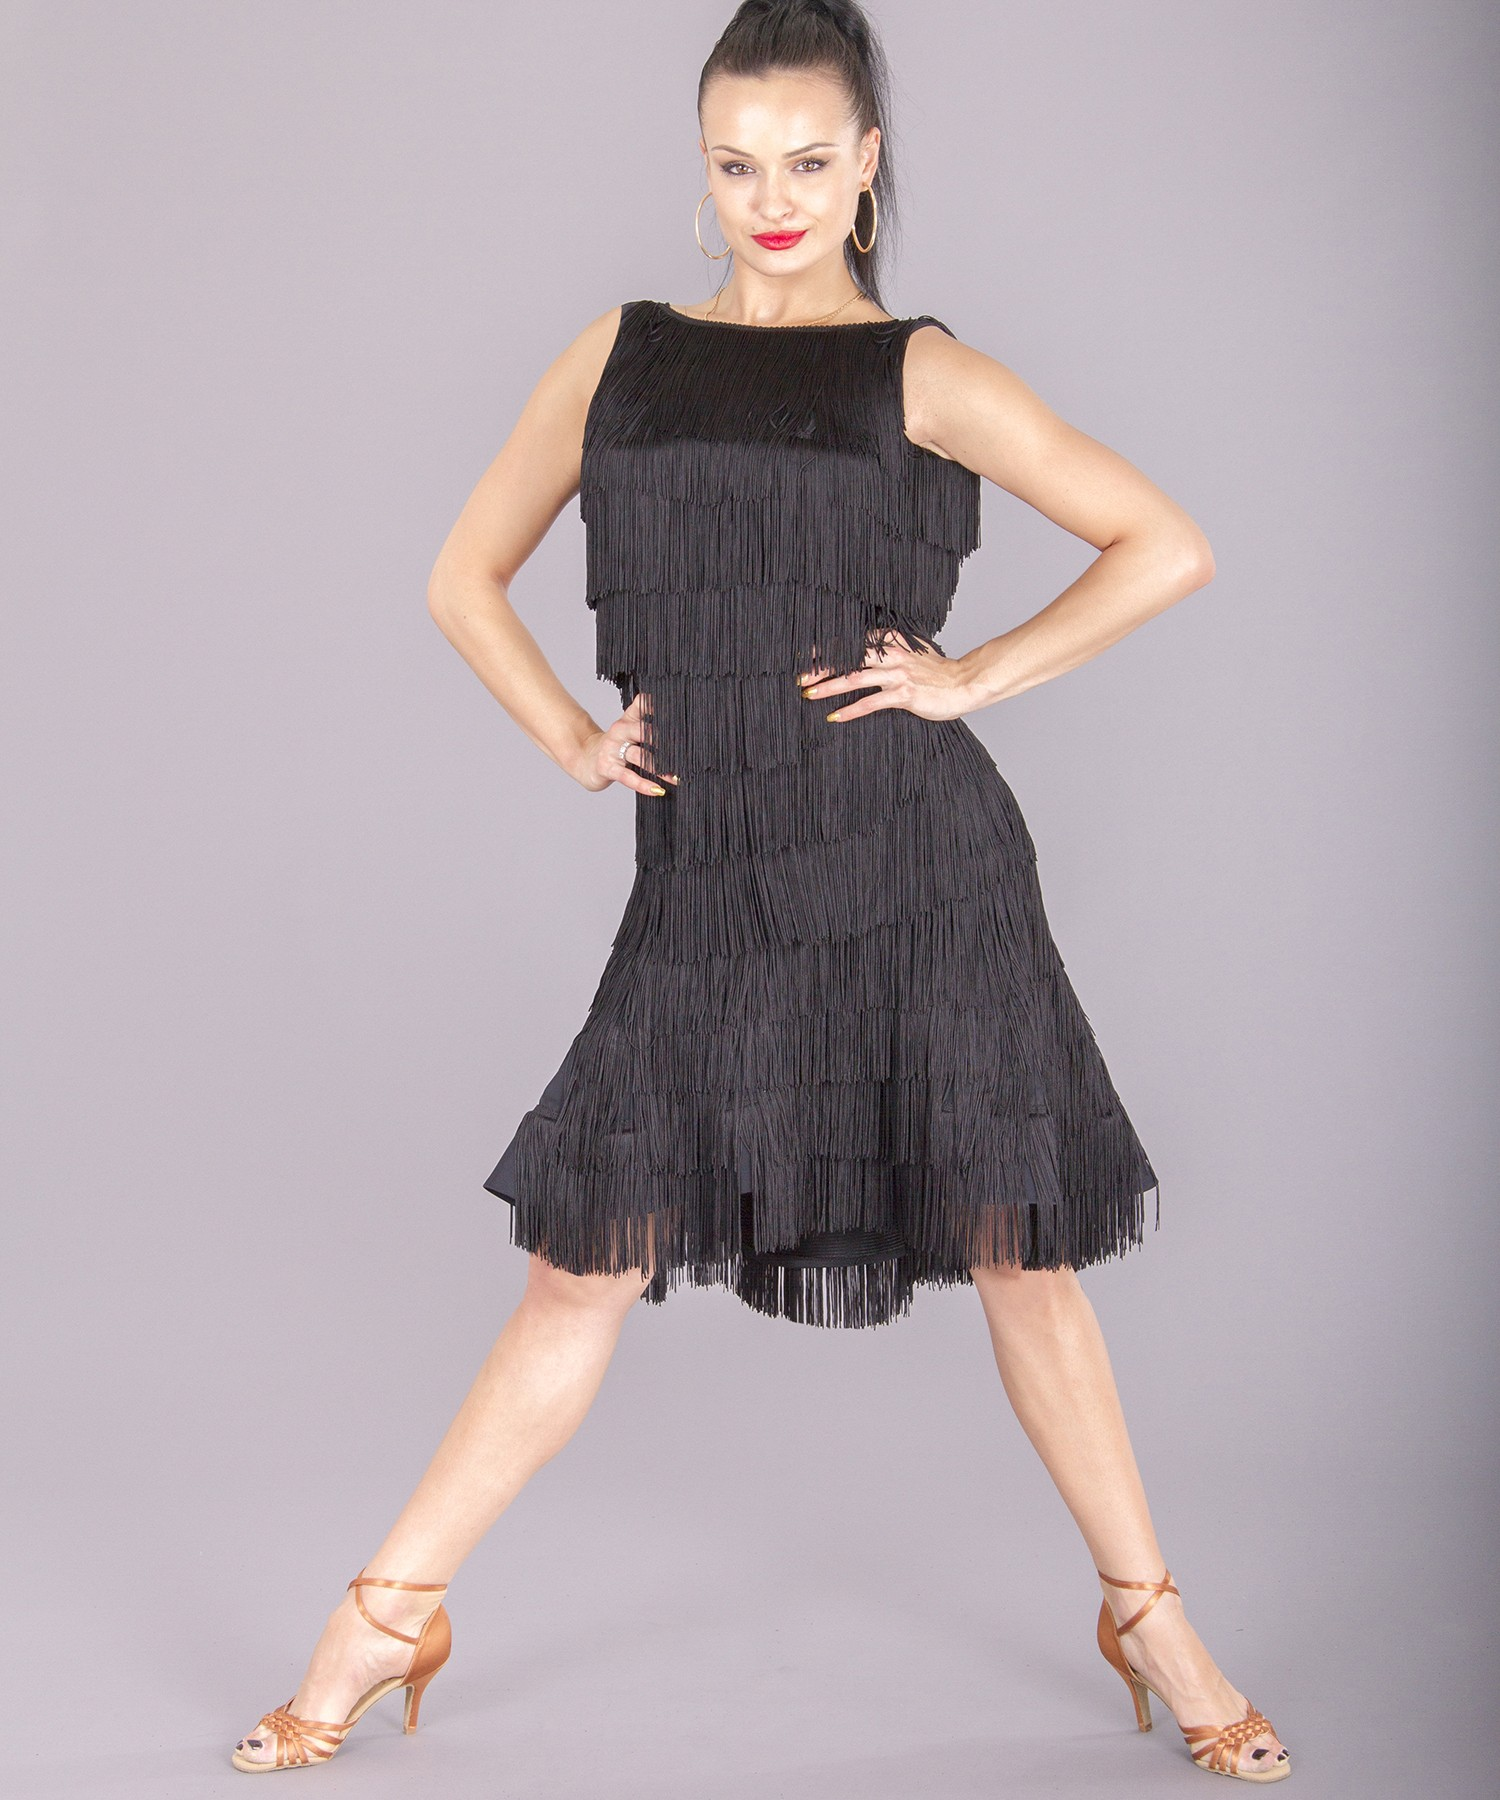 962136bc85ff Women's Dresses, DSI London, 3251 Yuliya Dress, $350.00, from VEdance, the  very best in ballroom and Latin dance shoes and dancewear.